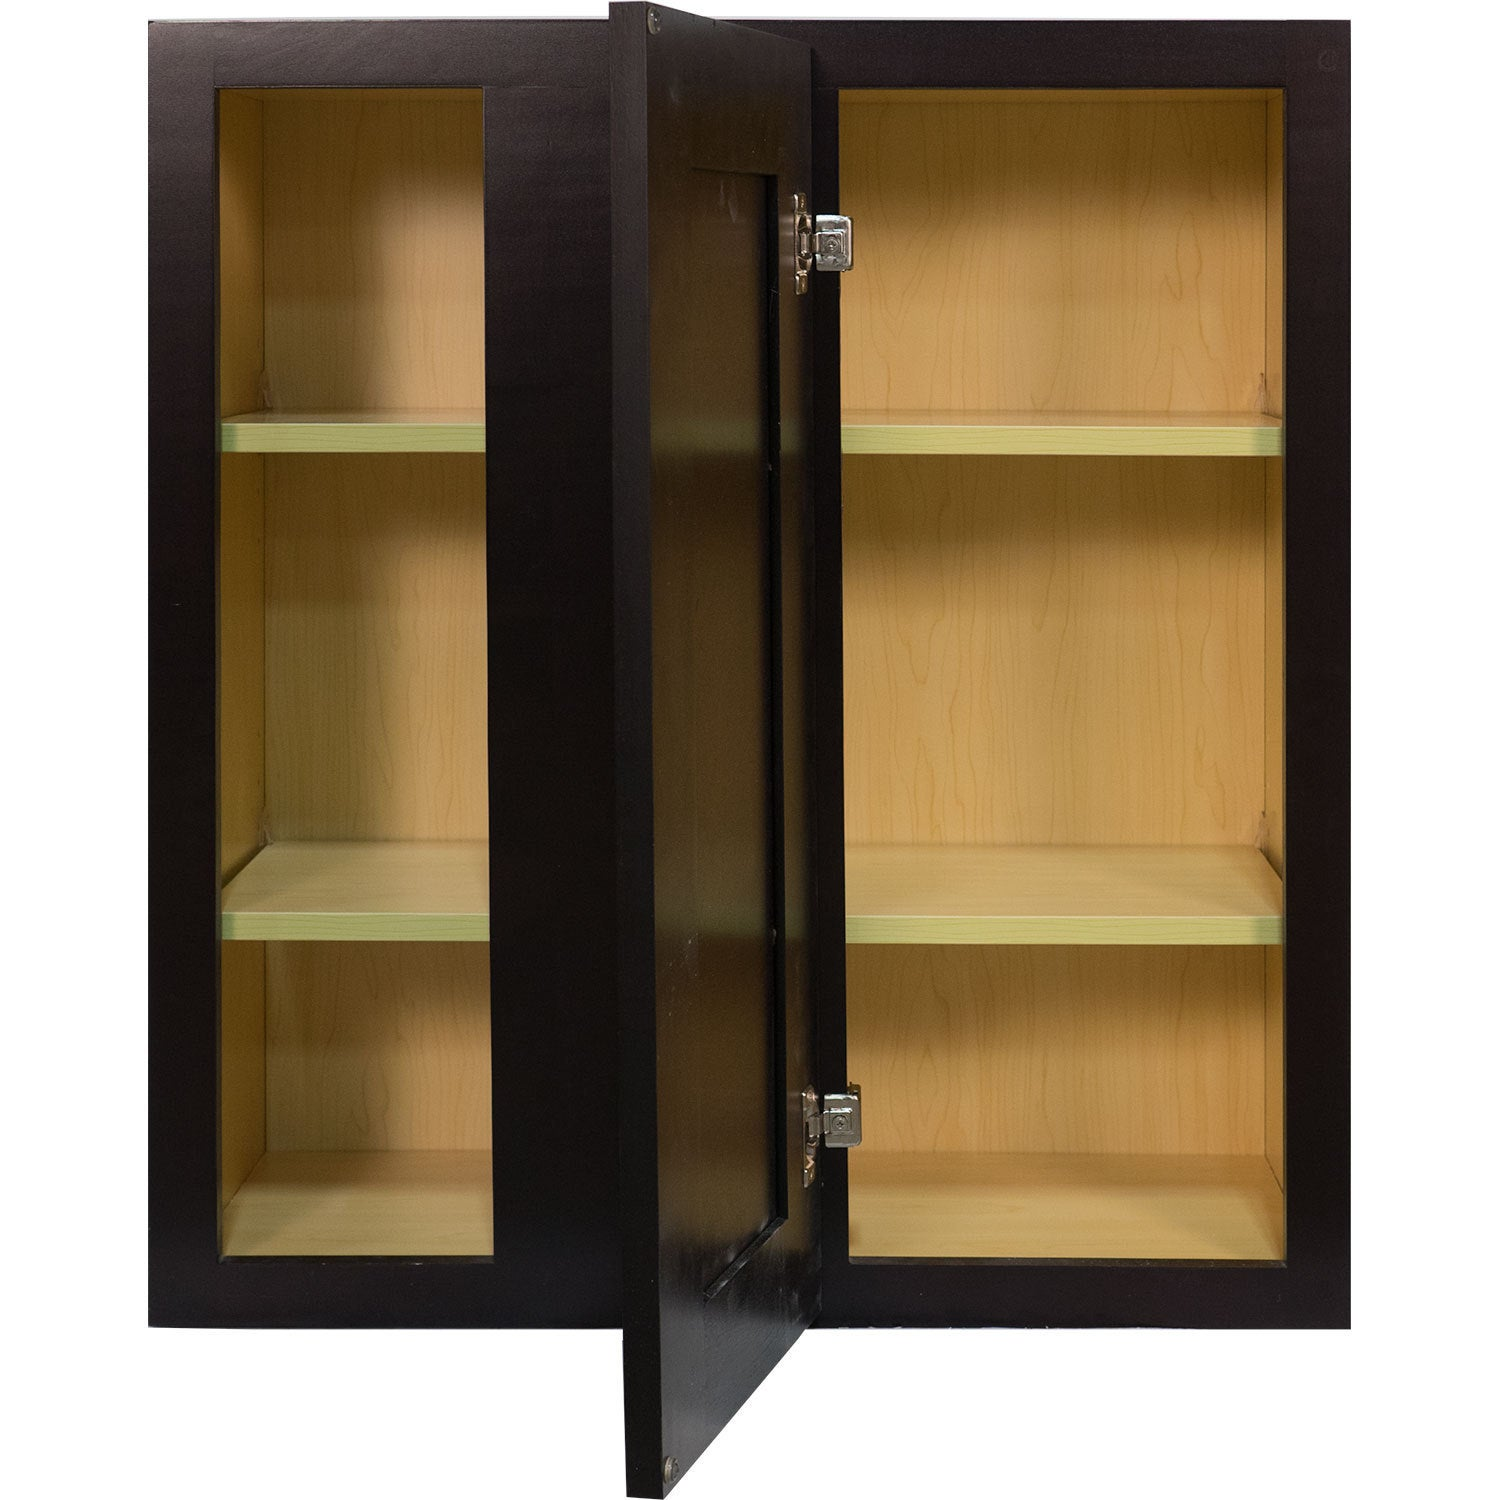 Everyday Cabinets 27 Inch Dark Espresso Shaker Blind Corner Wall Cabinet    Free Shipping Today   Overstock   19148582